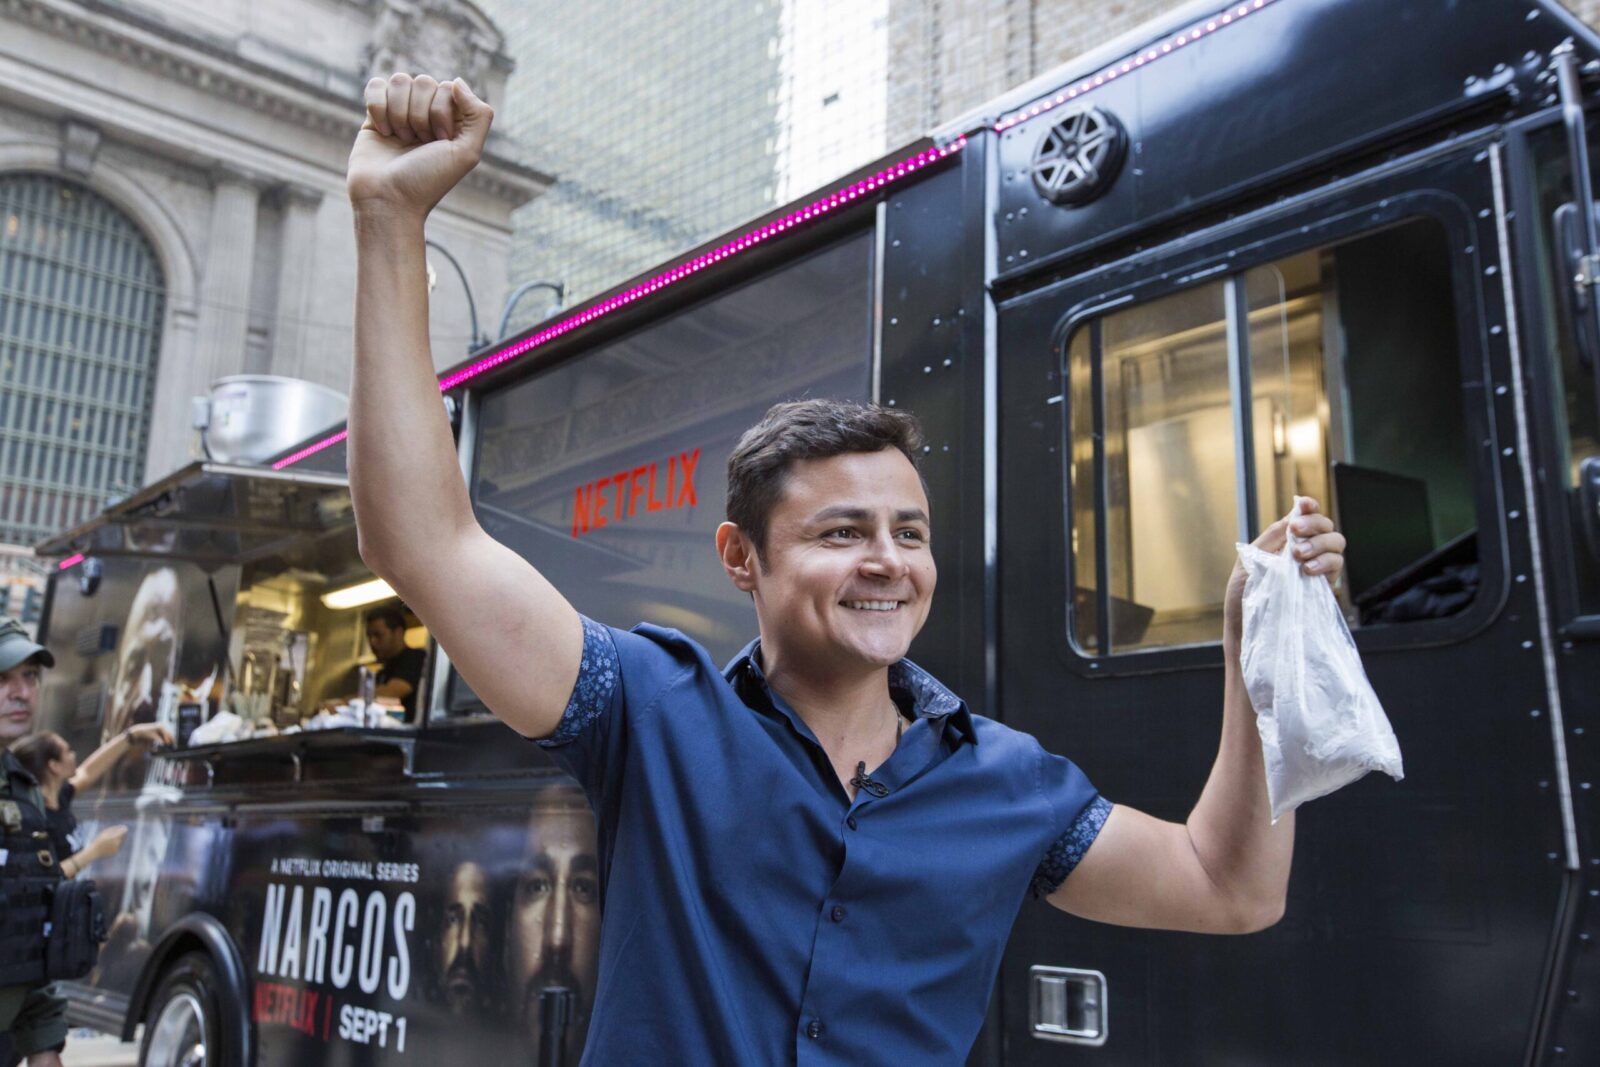 marketing agency creates food truck for narcos